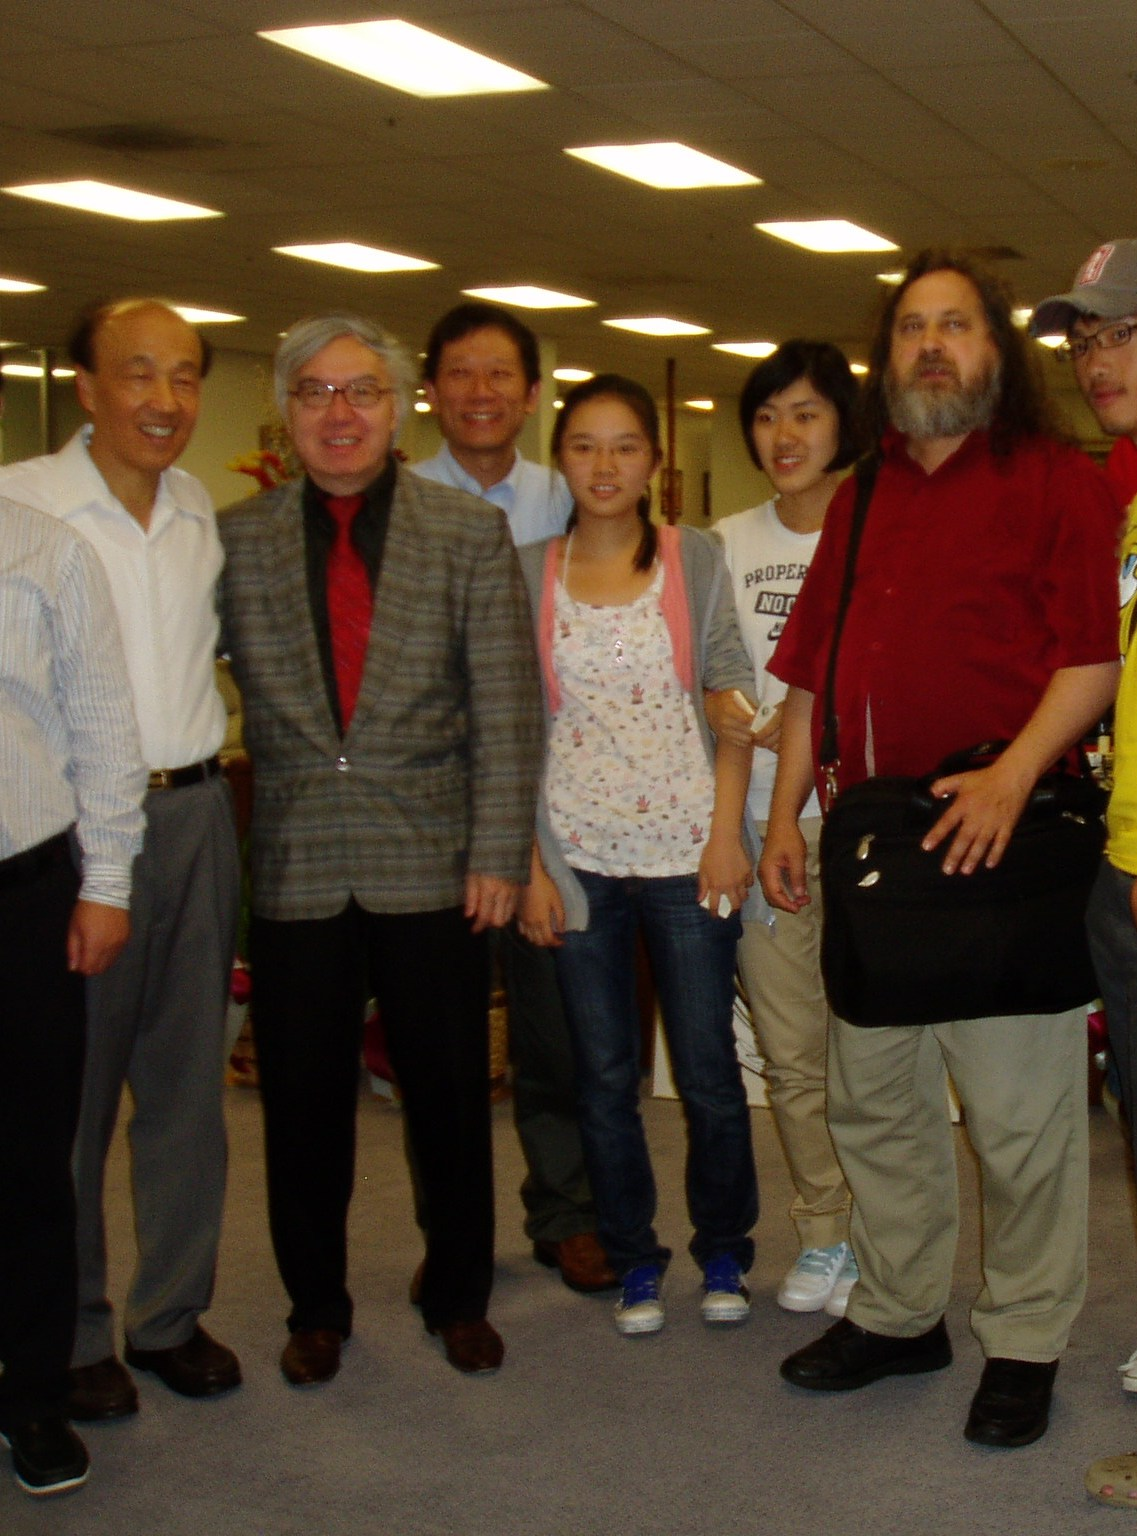 NPU picture of President of NPU, George Hsieh, Hugh Ching, Pochang Hsu, and Richard Stallman, 2010.